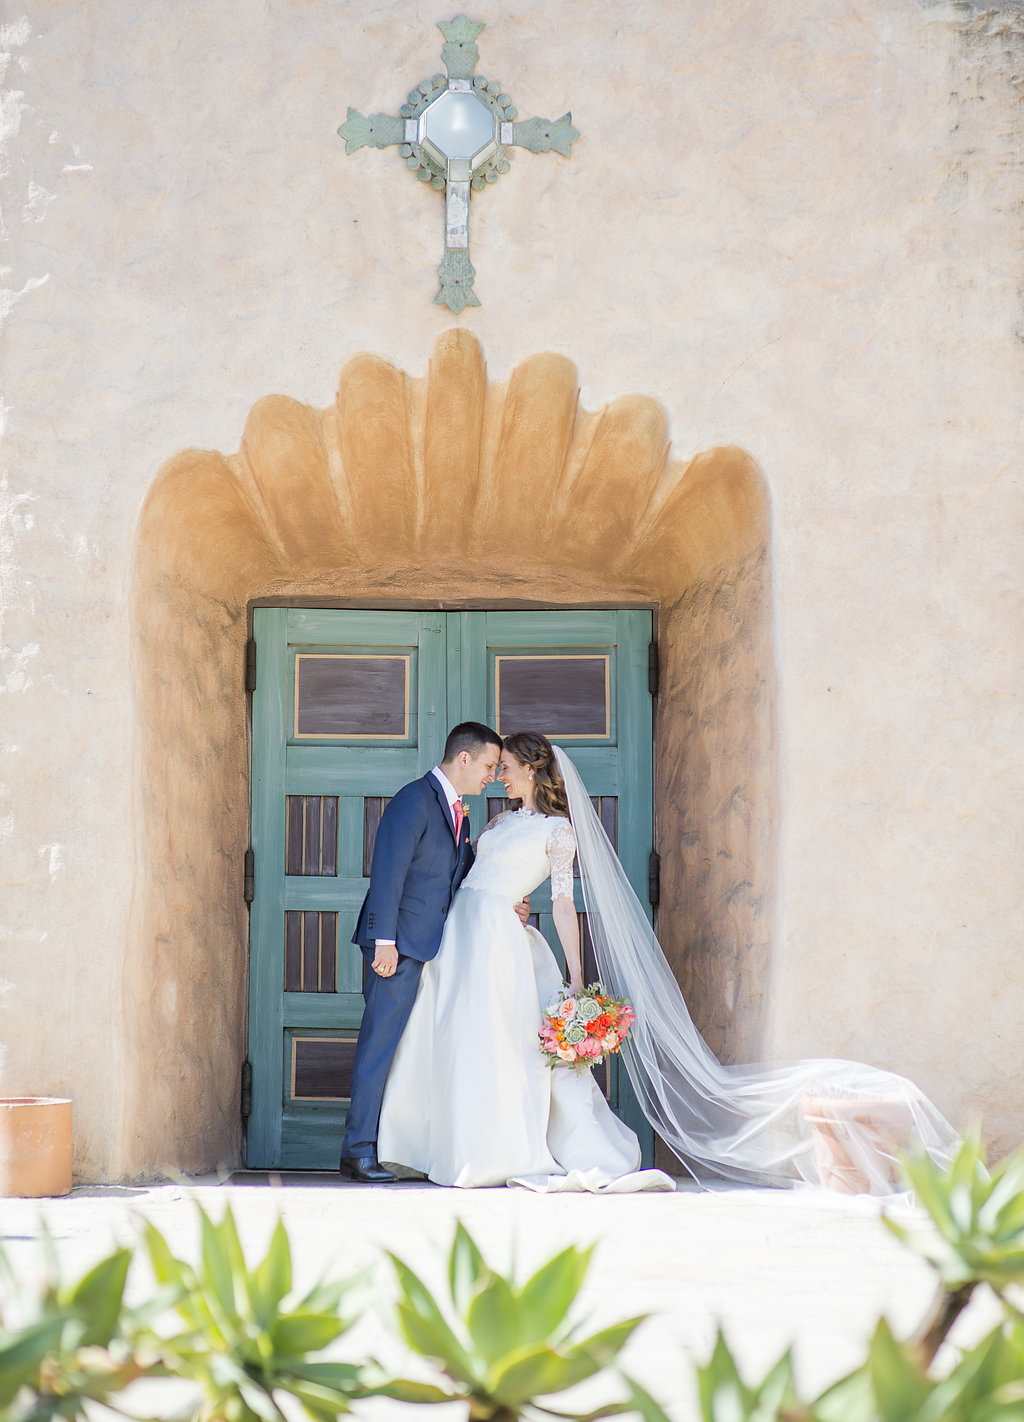 alegria-by-design-wedding-planner-coordinator-event-mount-carmel-church-montecito-santa-barbara-university-club-courthouse-coral-succulent-riviera-mansion (10).jpg